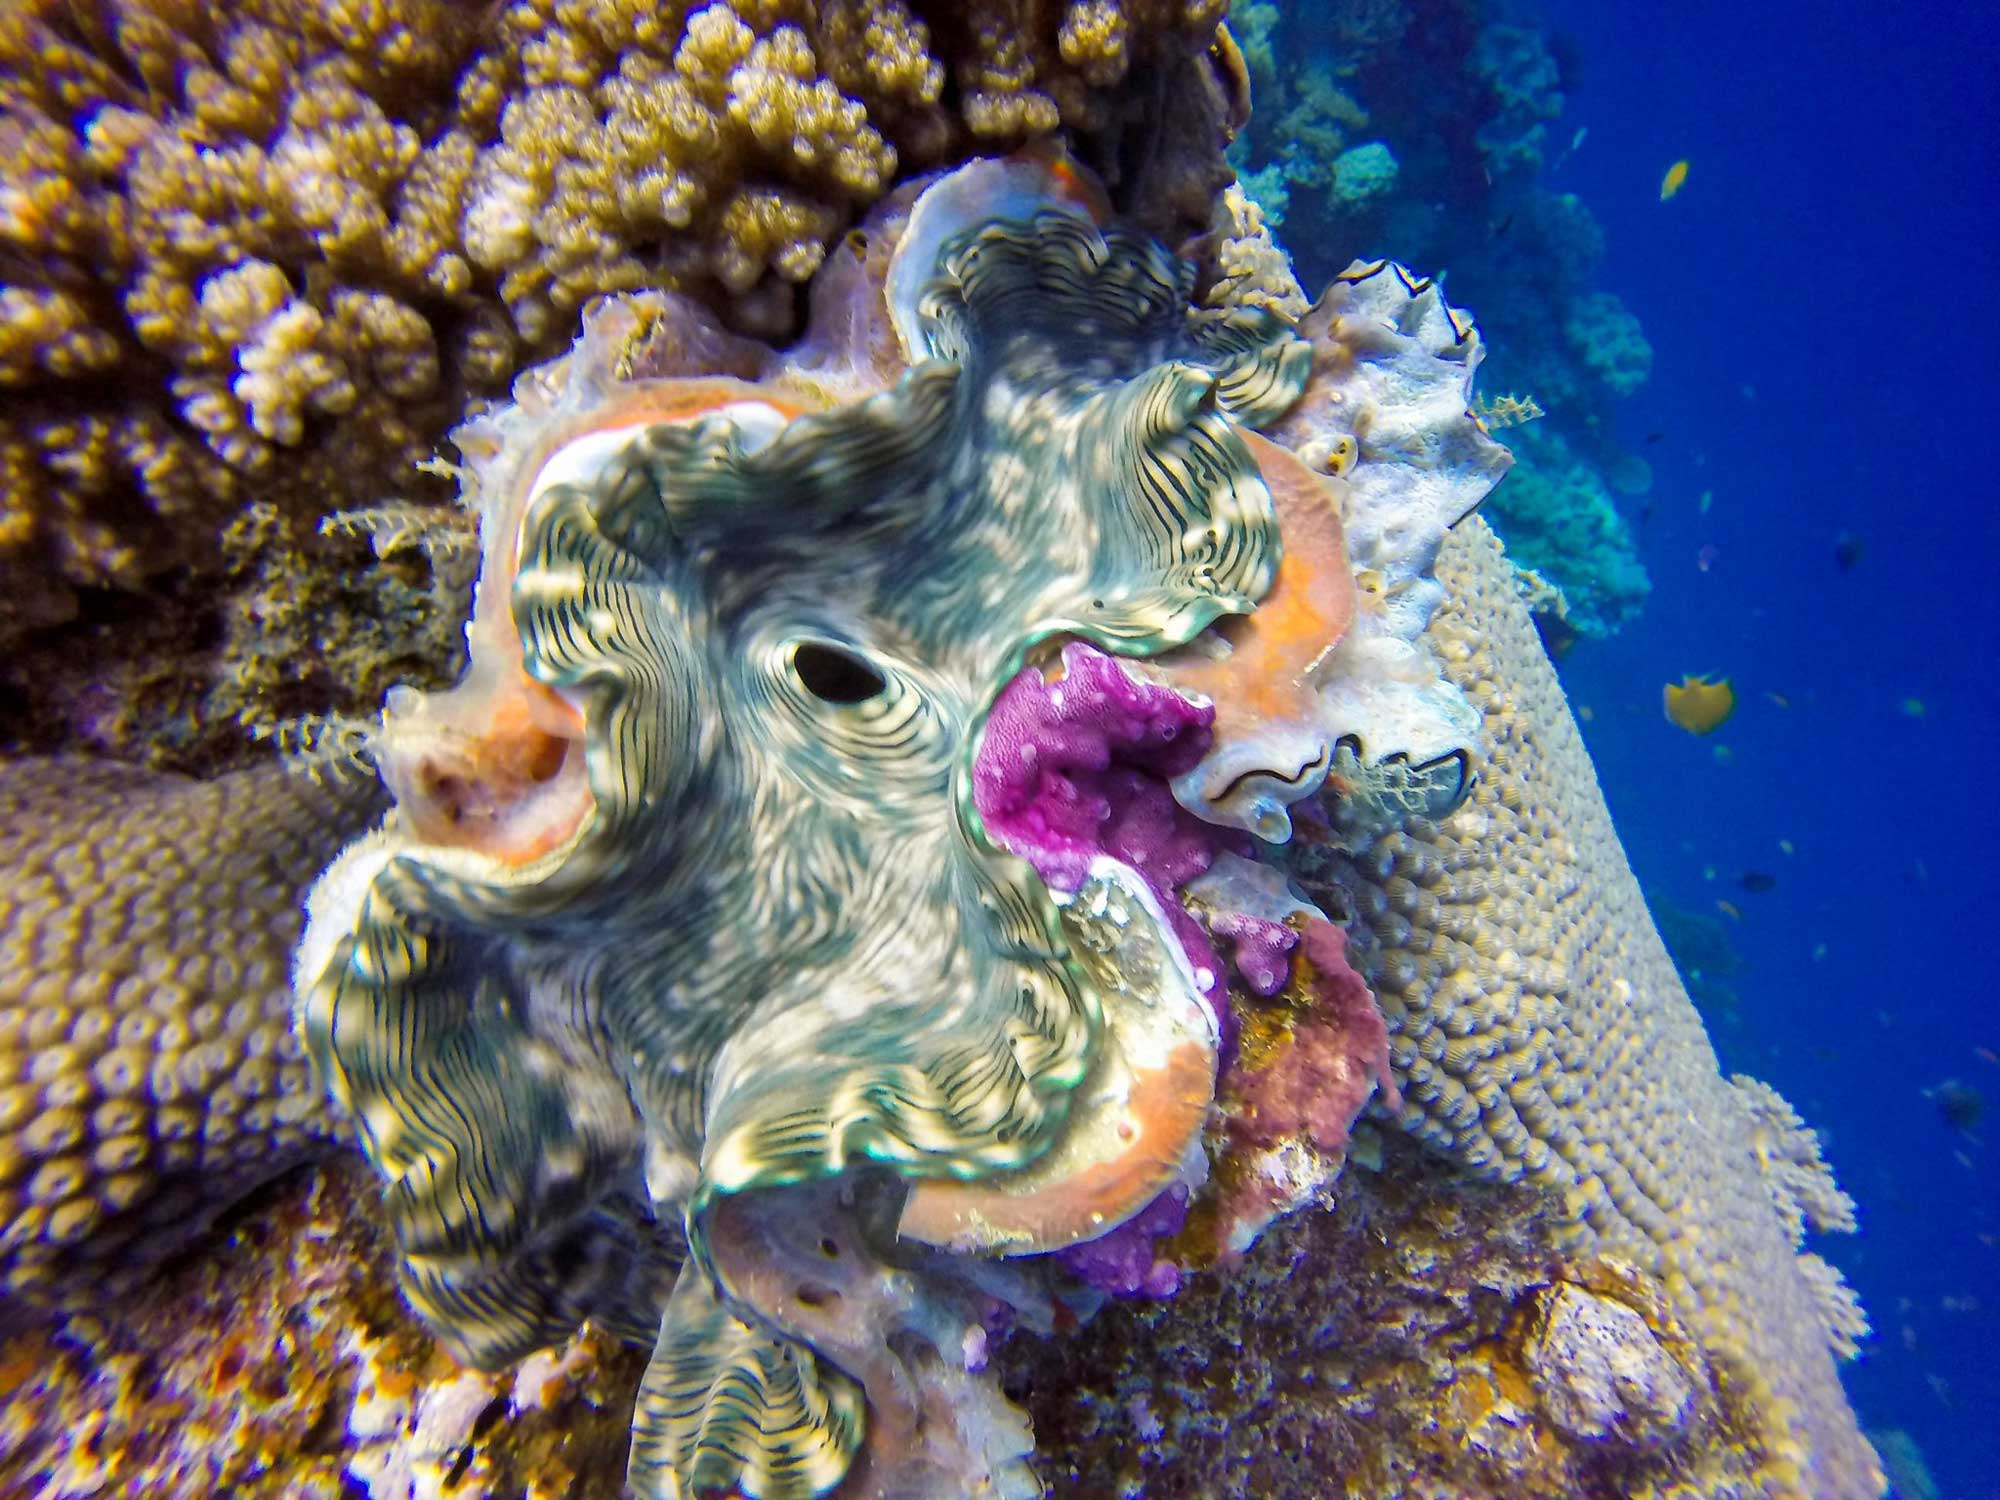 Photograph of a live giant clam.